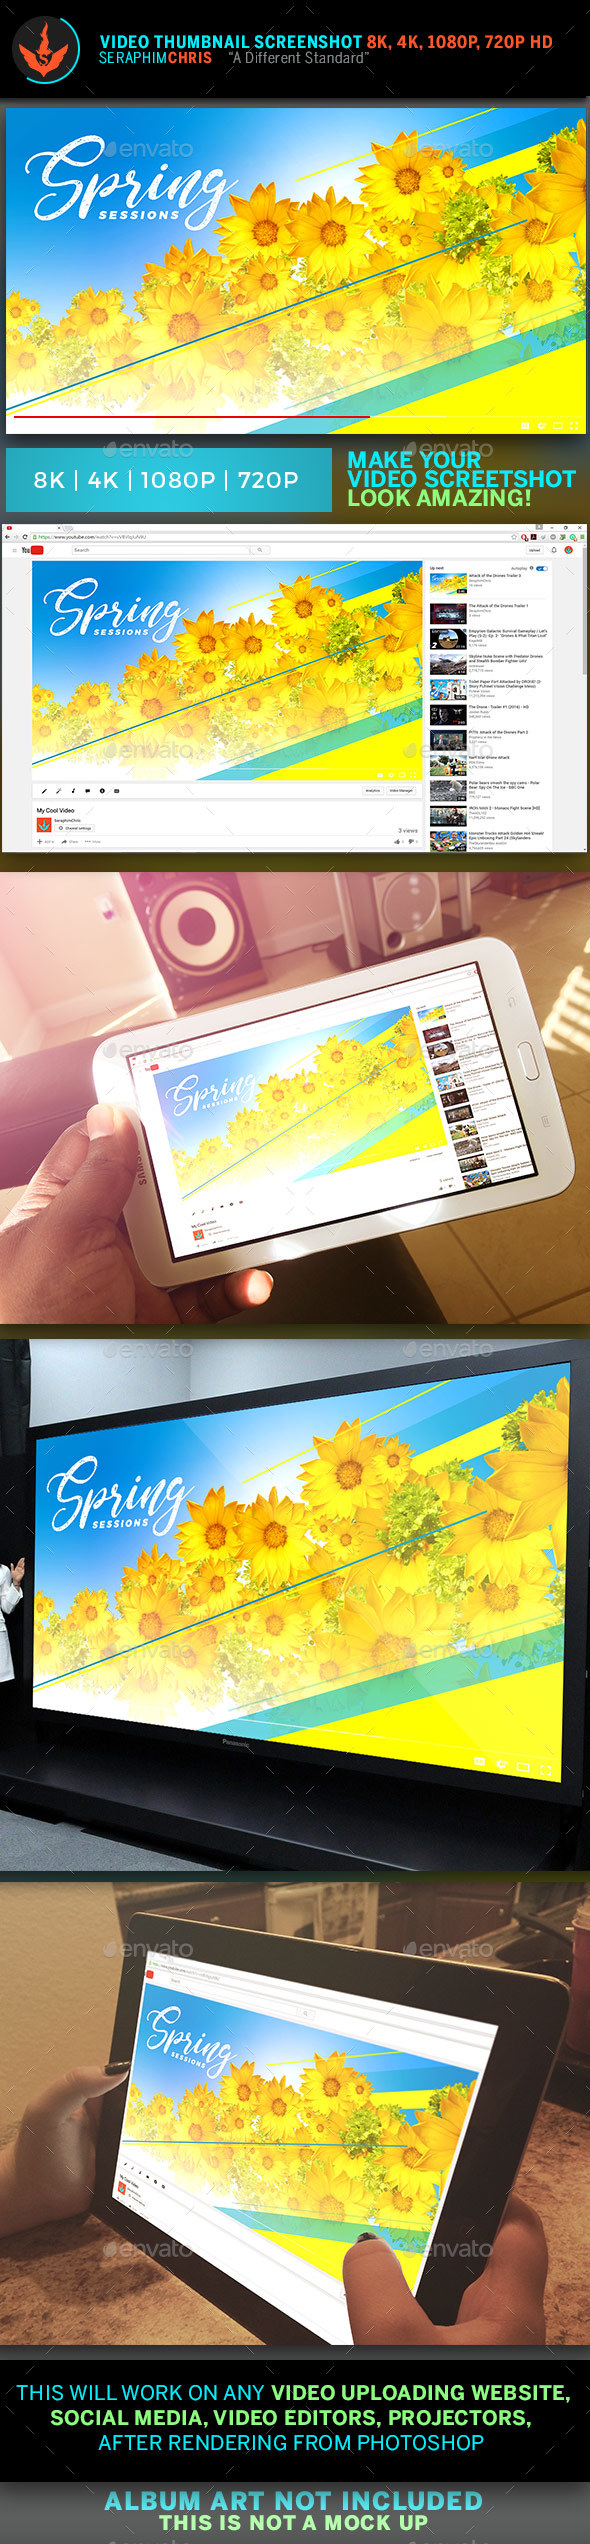 Spring Break YouTube Video Artwork Template - YouTube Social Media